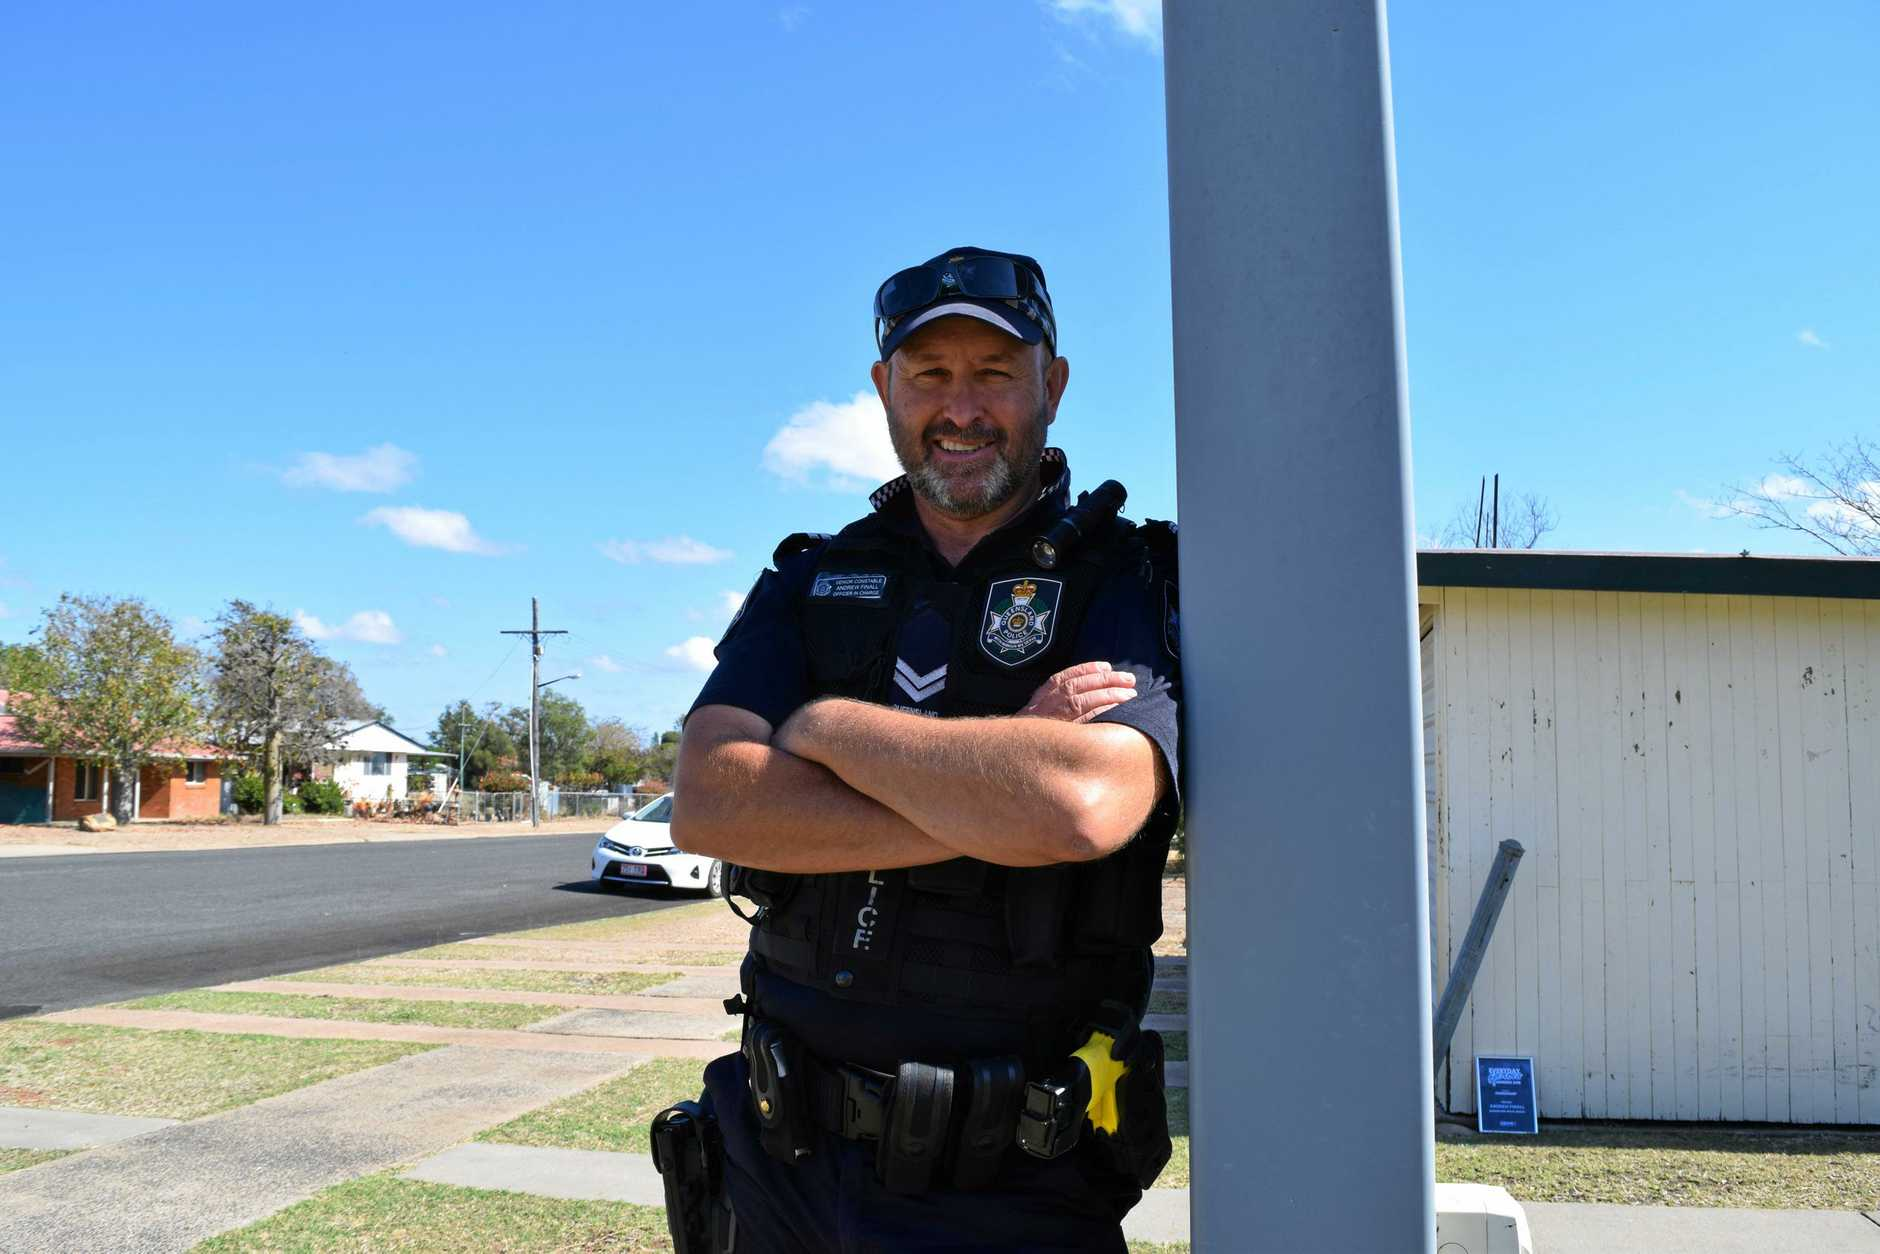 Officer in Charge of Capella Police Station, Snr Constable Andrew Finall was a finalist in the 2018 QBANK Everyday Heroes Awards.